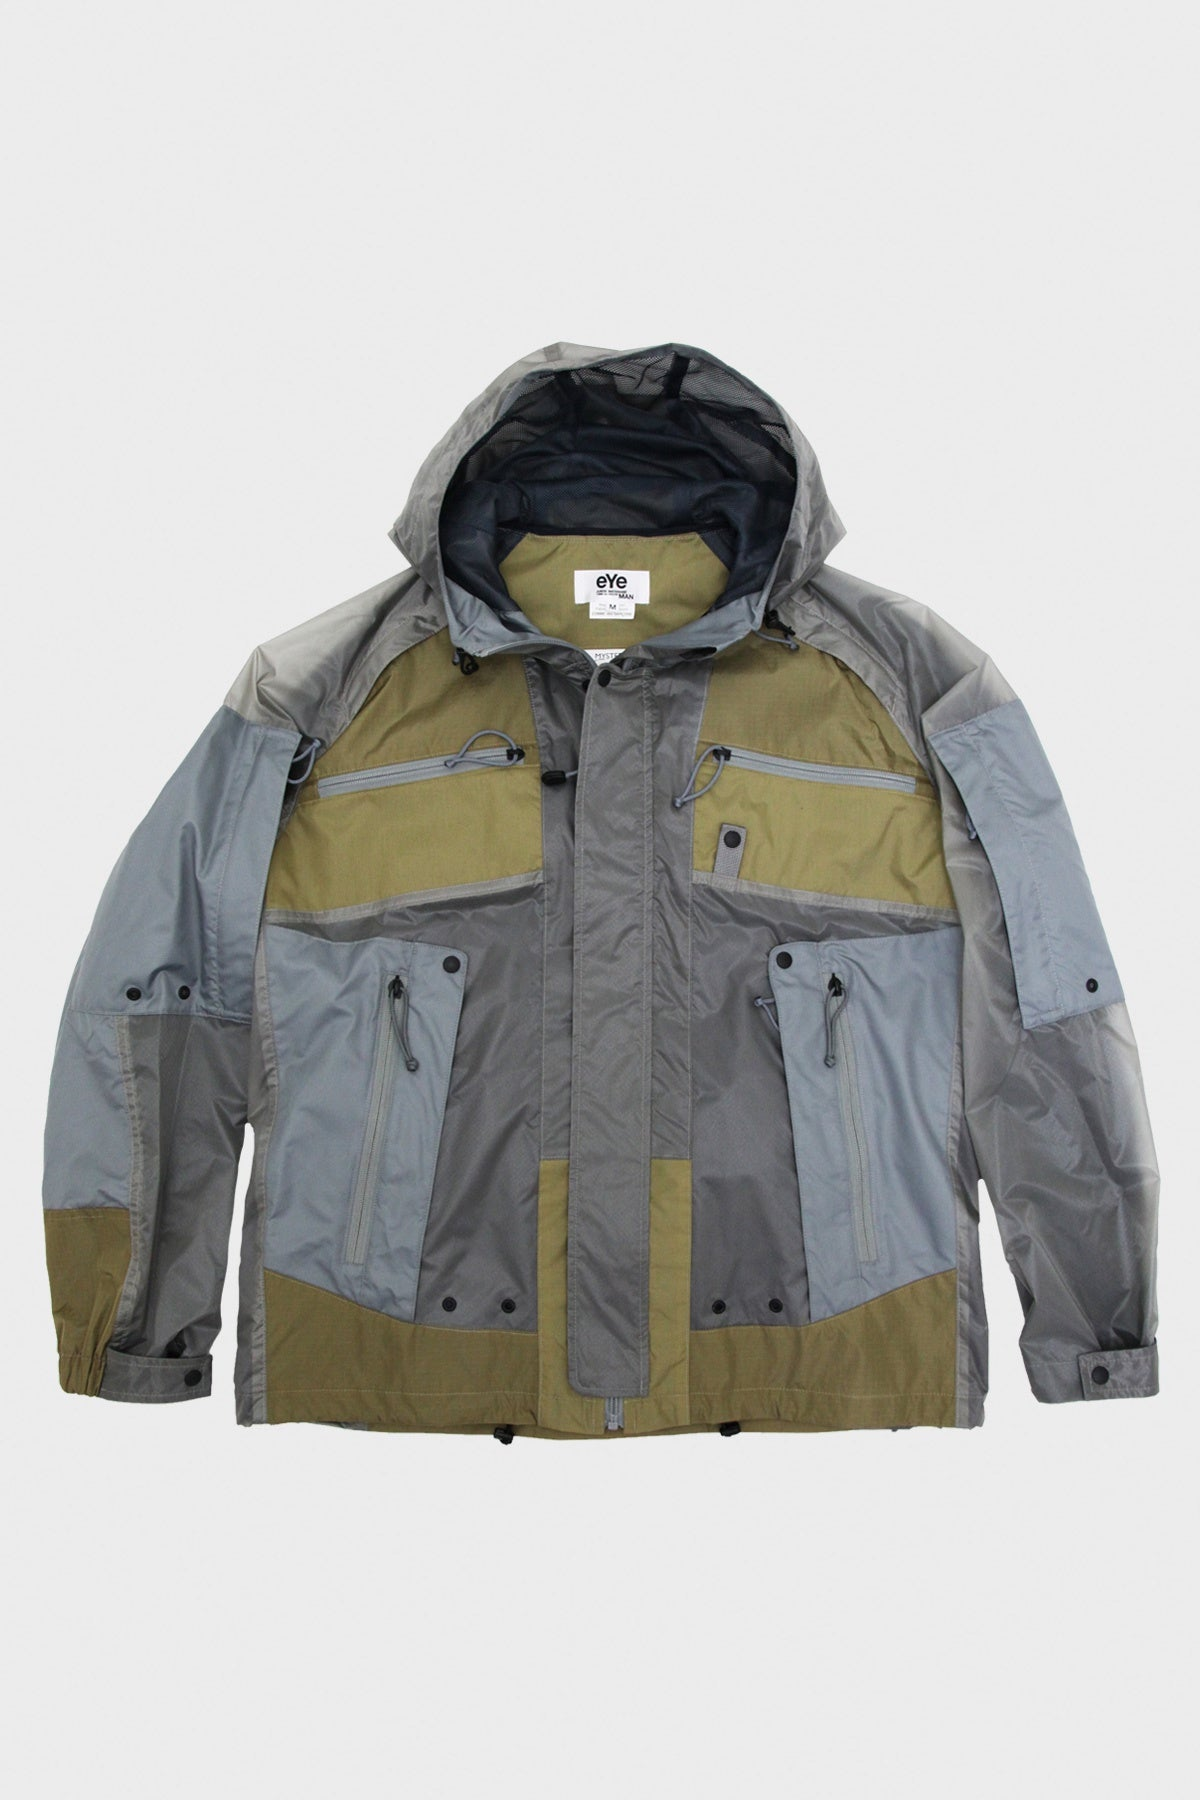 Junya Watanabe - Junya Watanabe x Mystery Ranch - Backpack Jacket - Khaki/Gray - Canoe Club